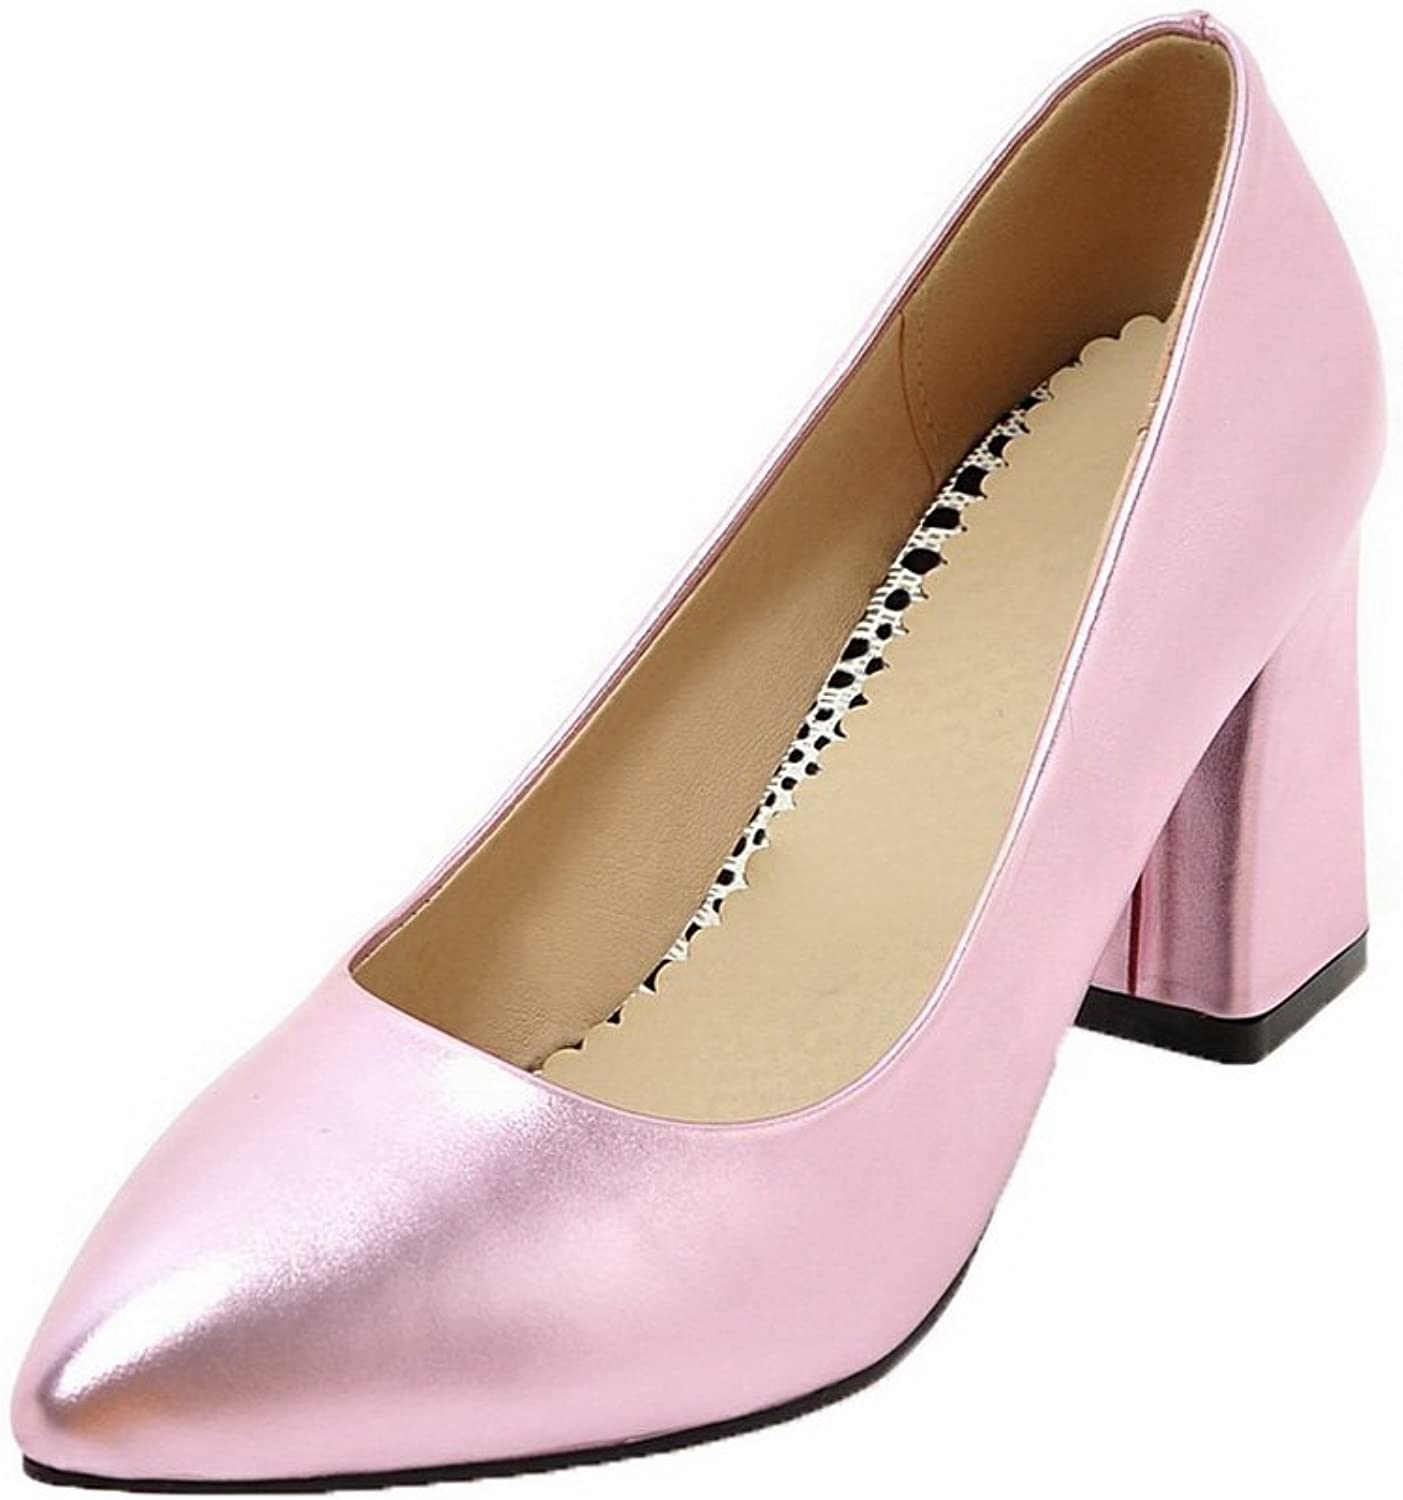 WeenFashion Women's PU Pointed Closed Toe High-Heels Pull-On Solid Pumps-shoes